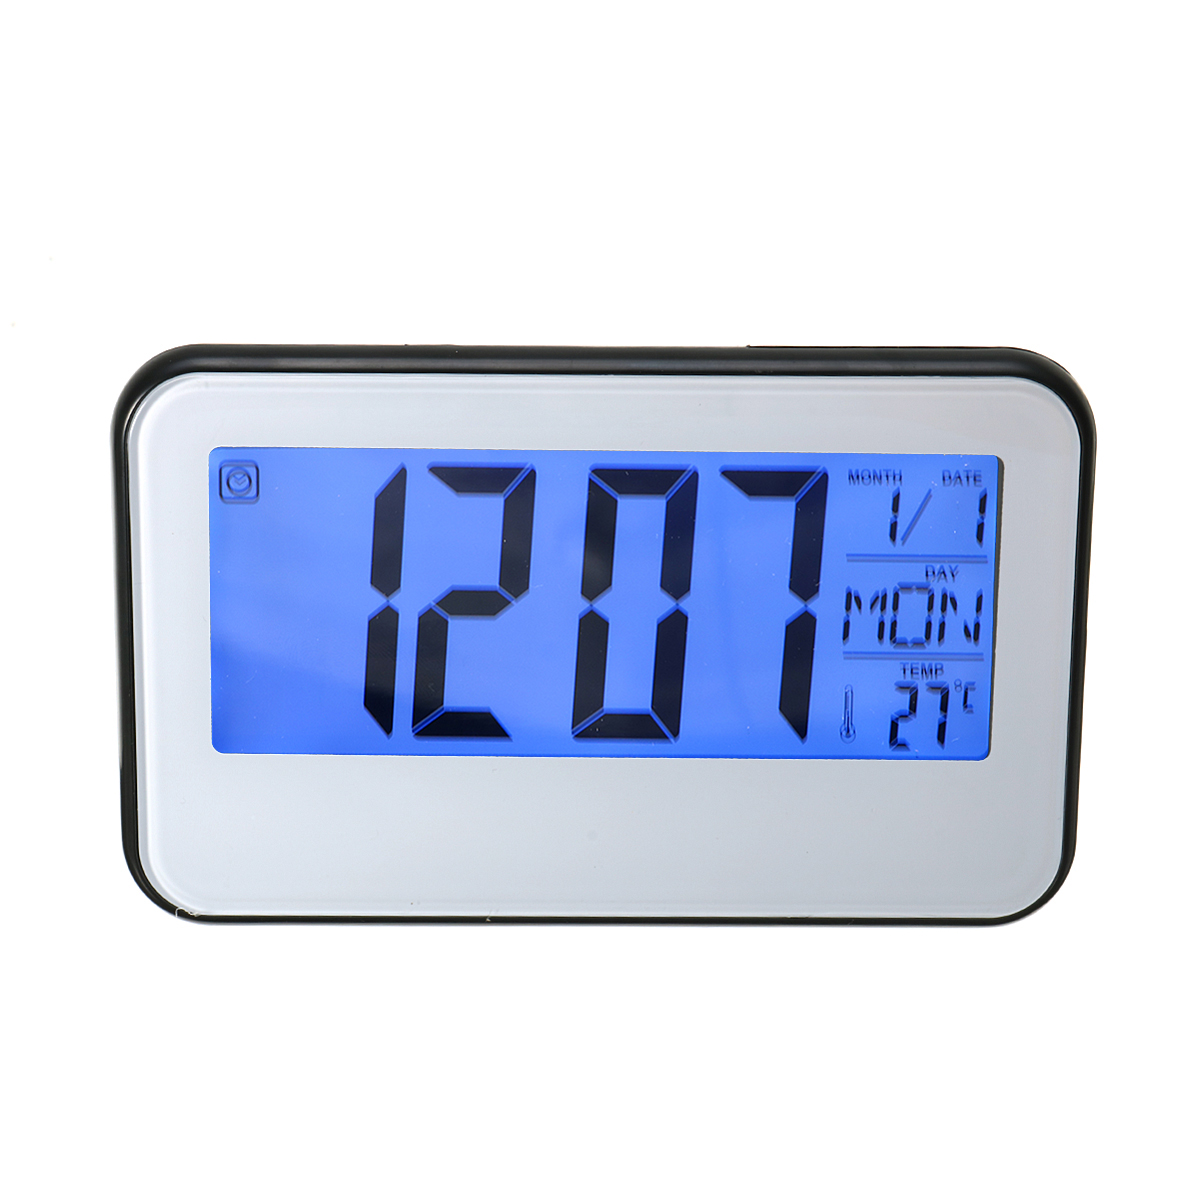 LCD Display Digital Alarm Clock Sound Controlled With Thermometer Backlight Snooze